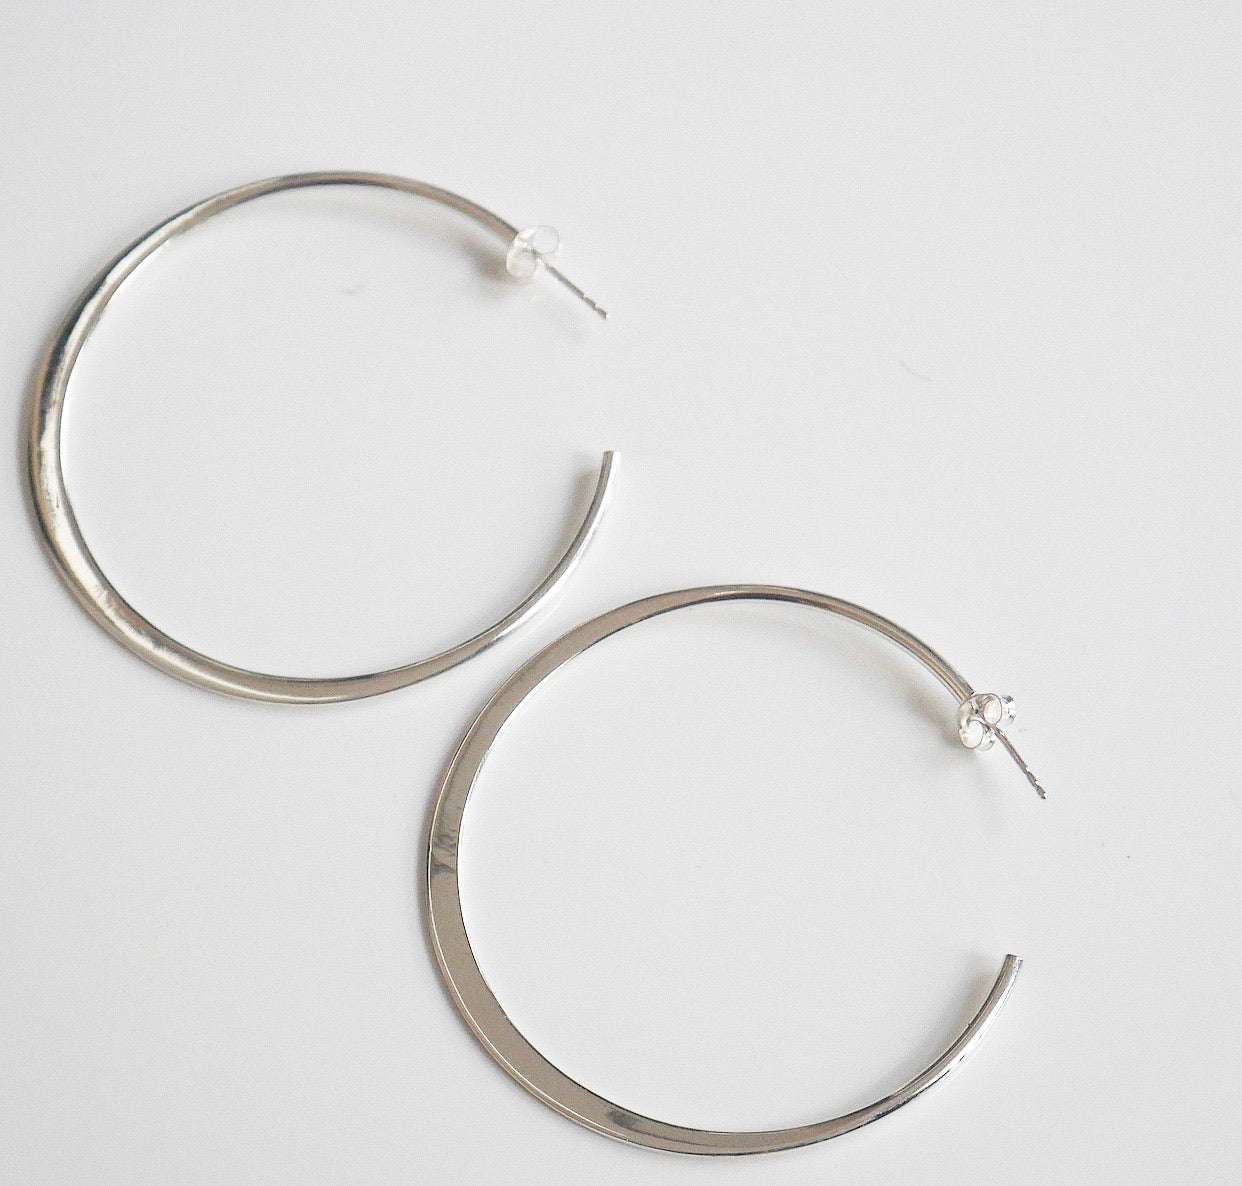 Flat Iron Push Back Hoop Earrings